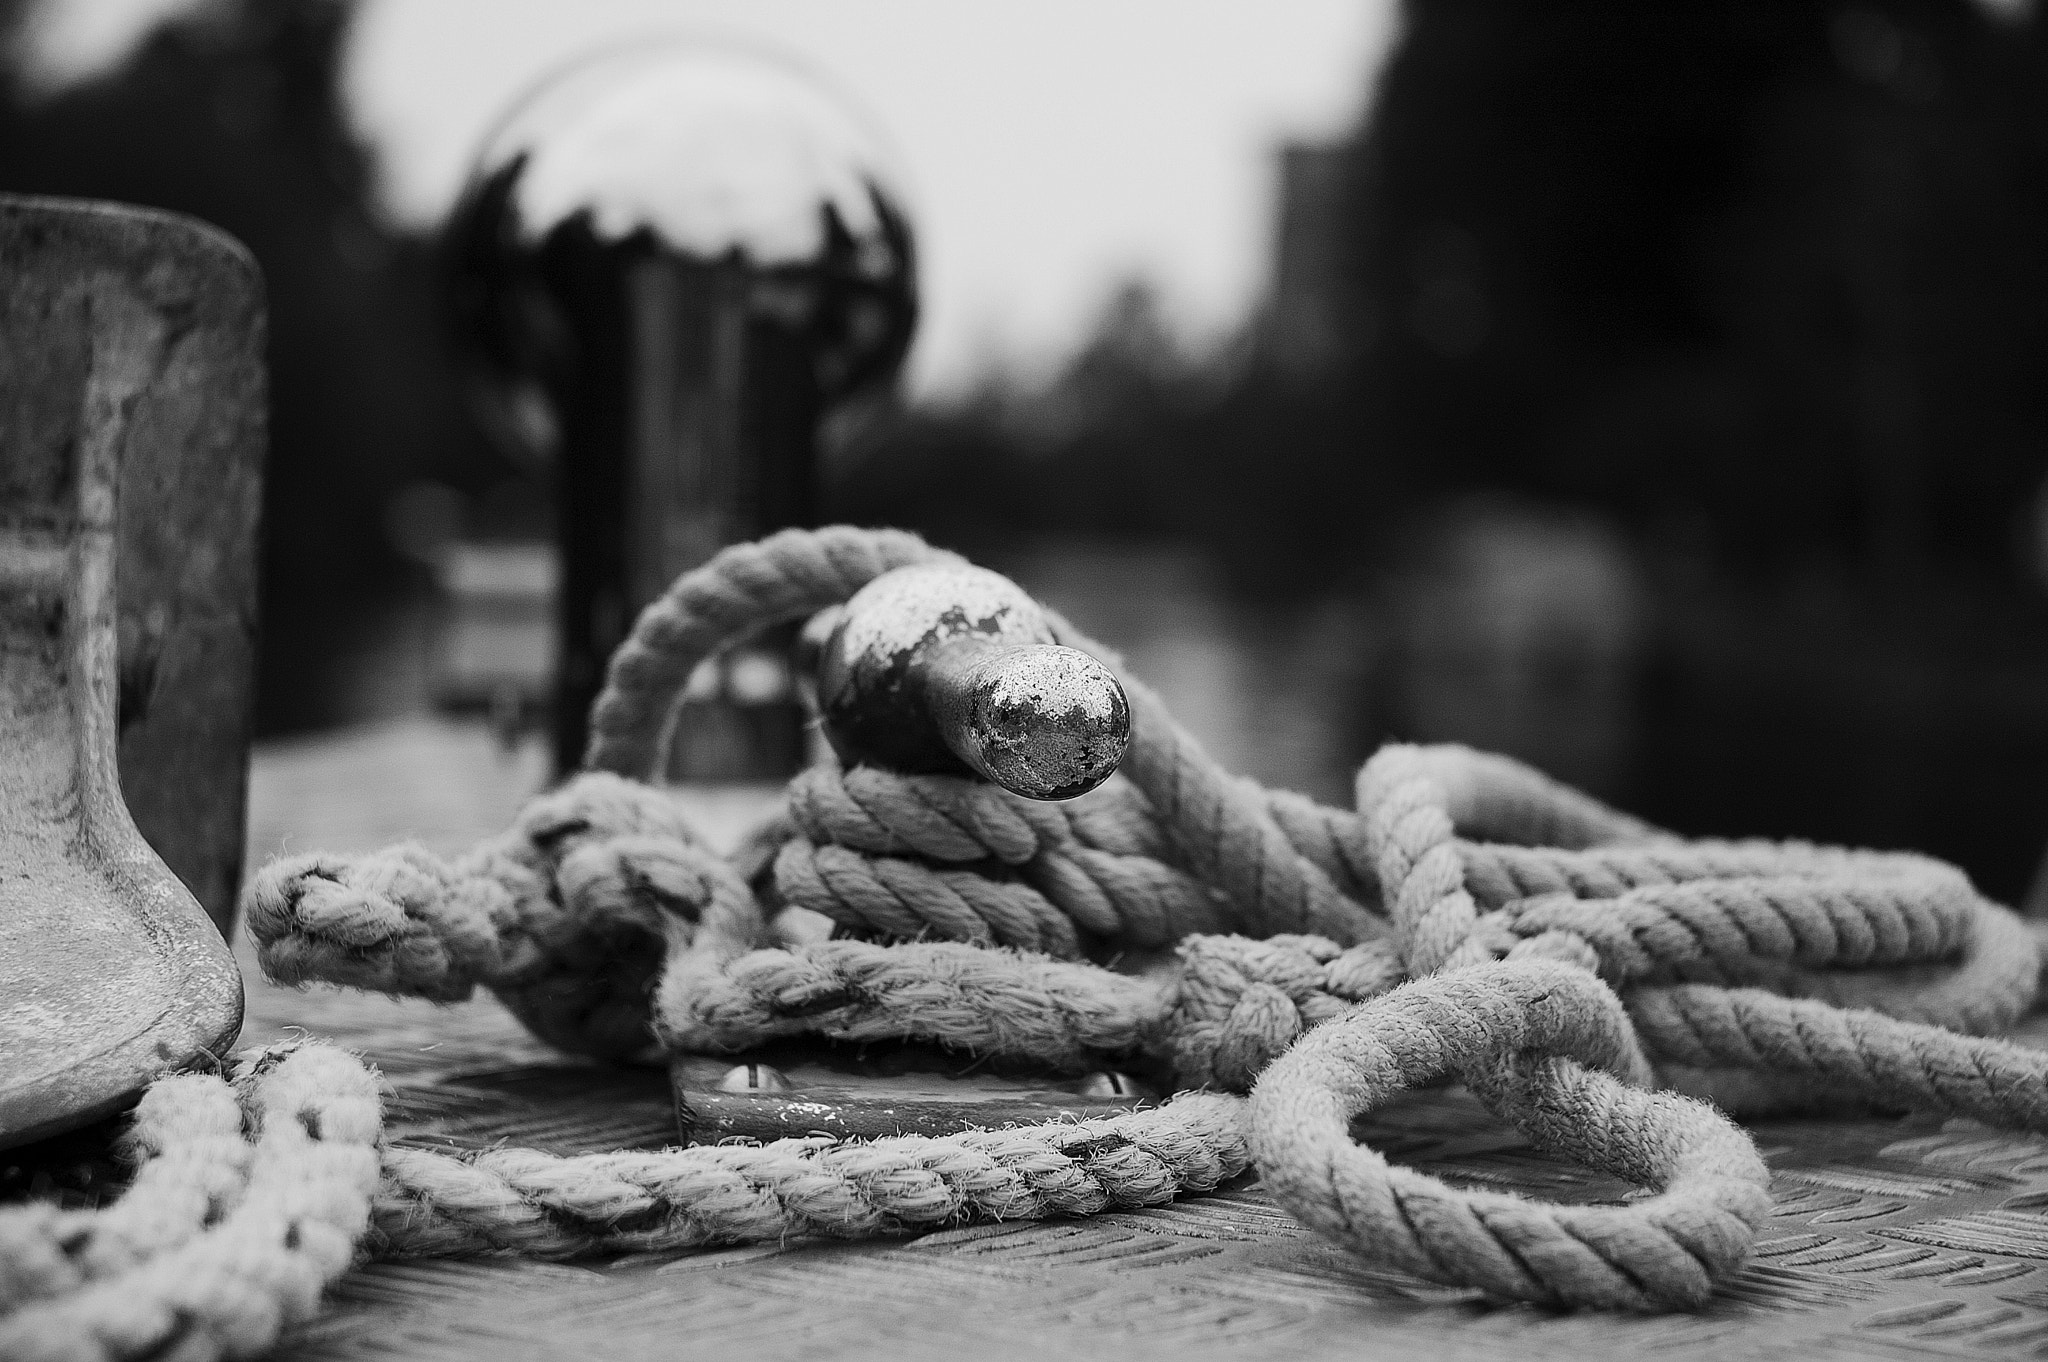 Photograph Rope by Magdalena Warmuz-Dent on 500px